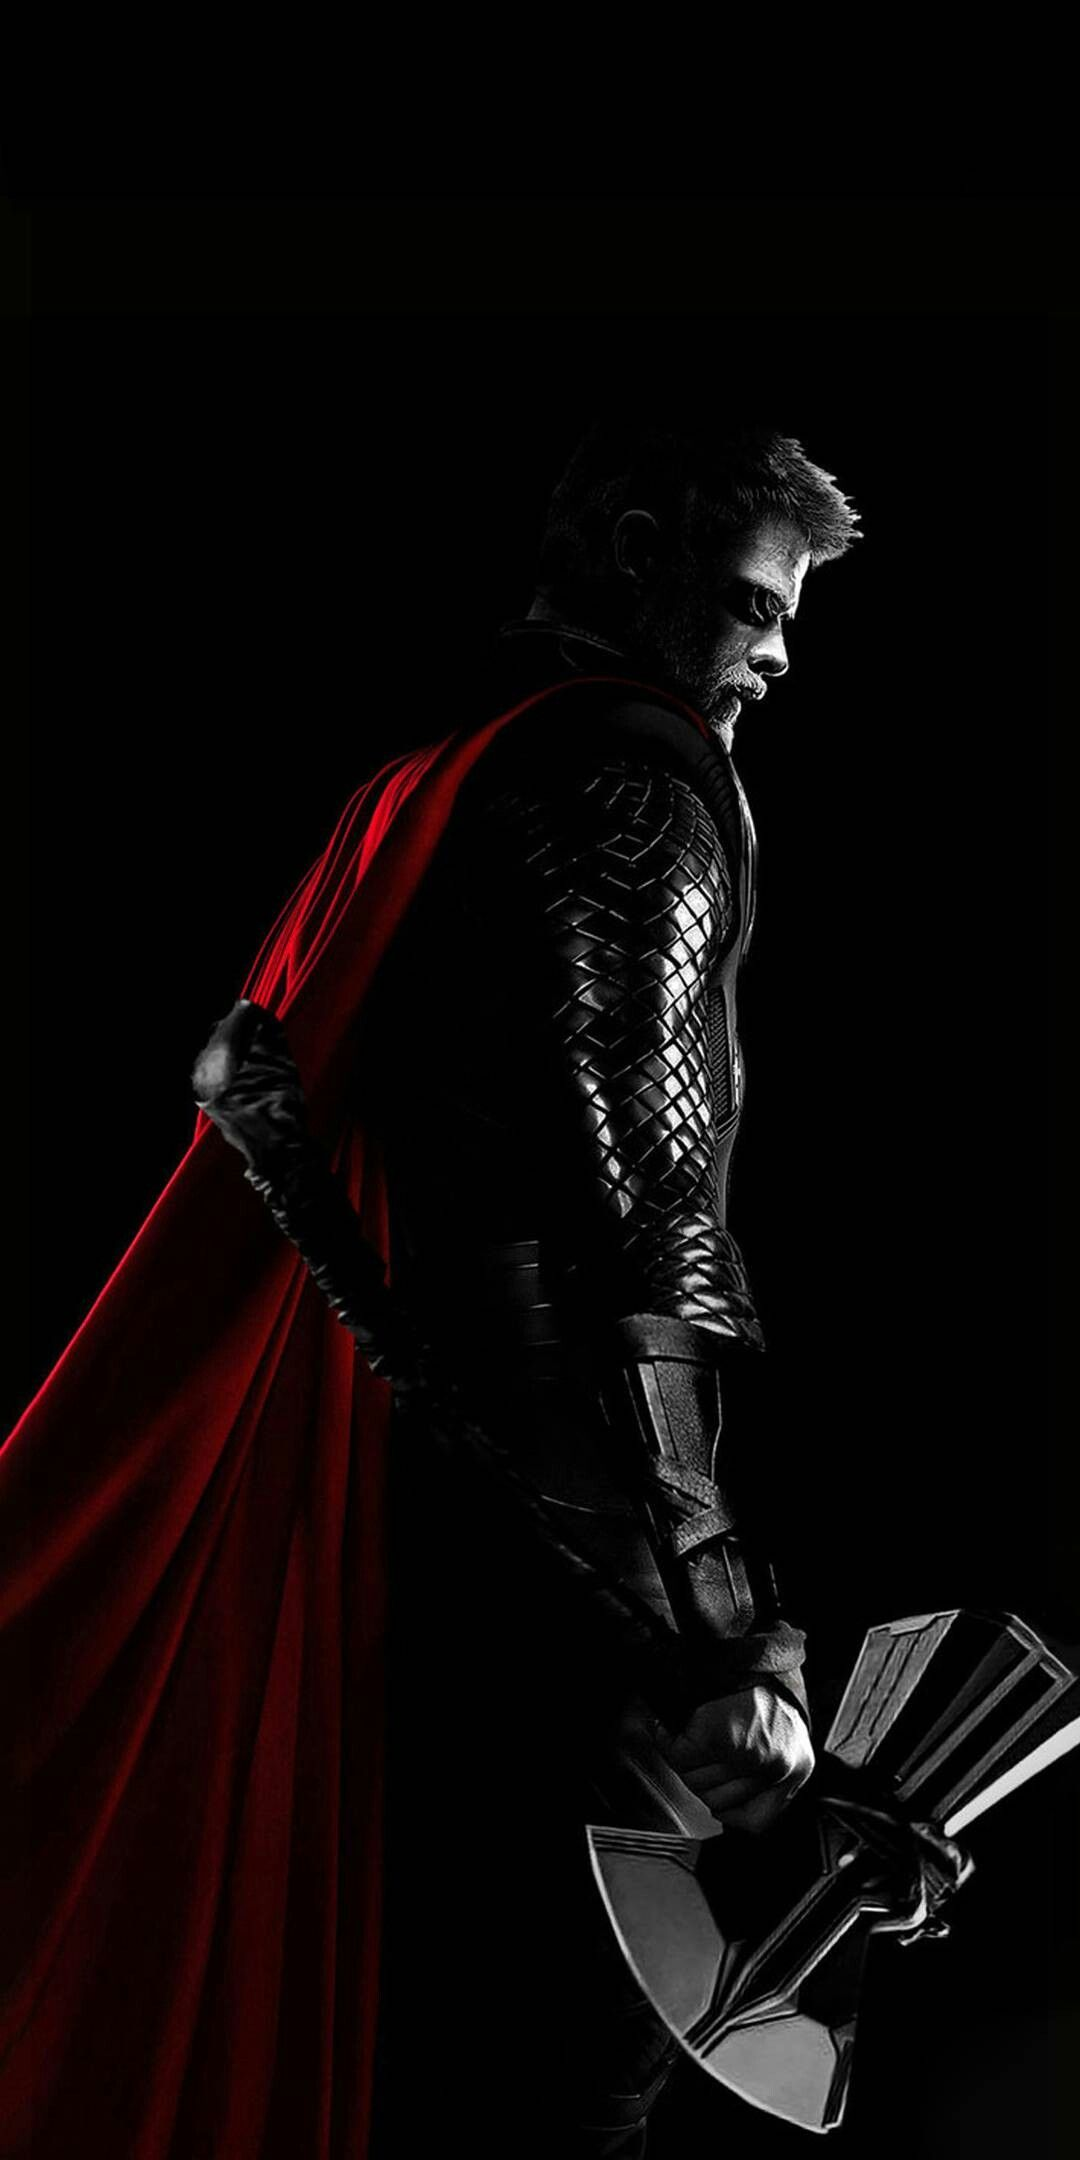 Thor from Uploaded by user